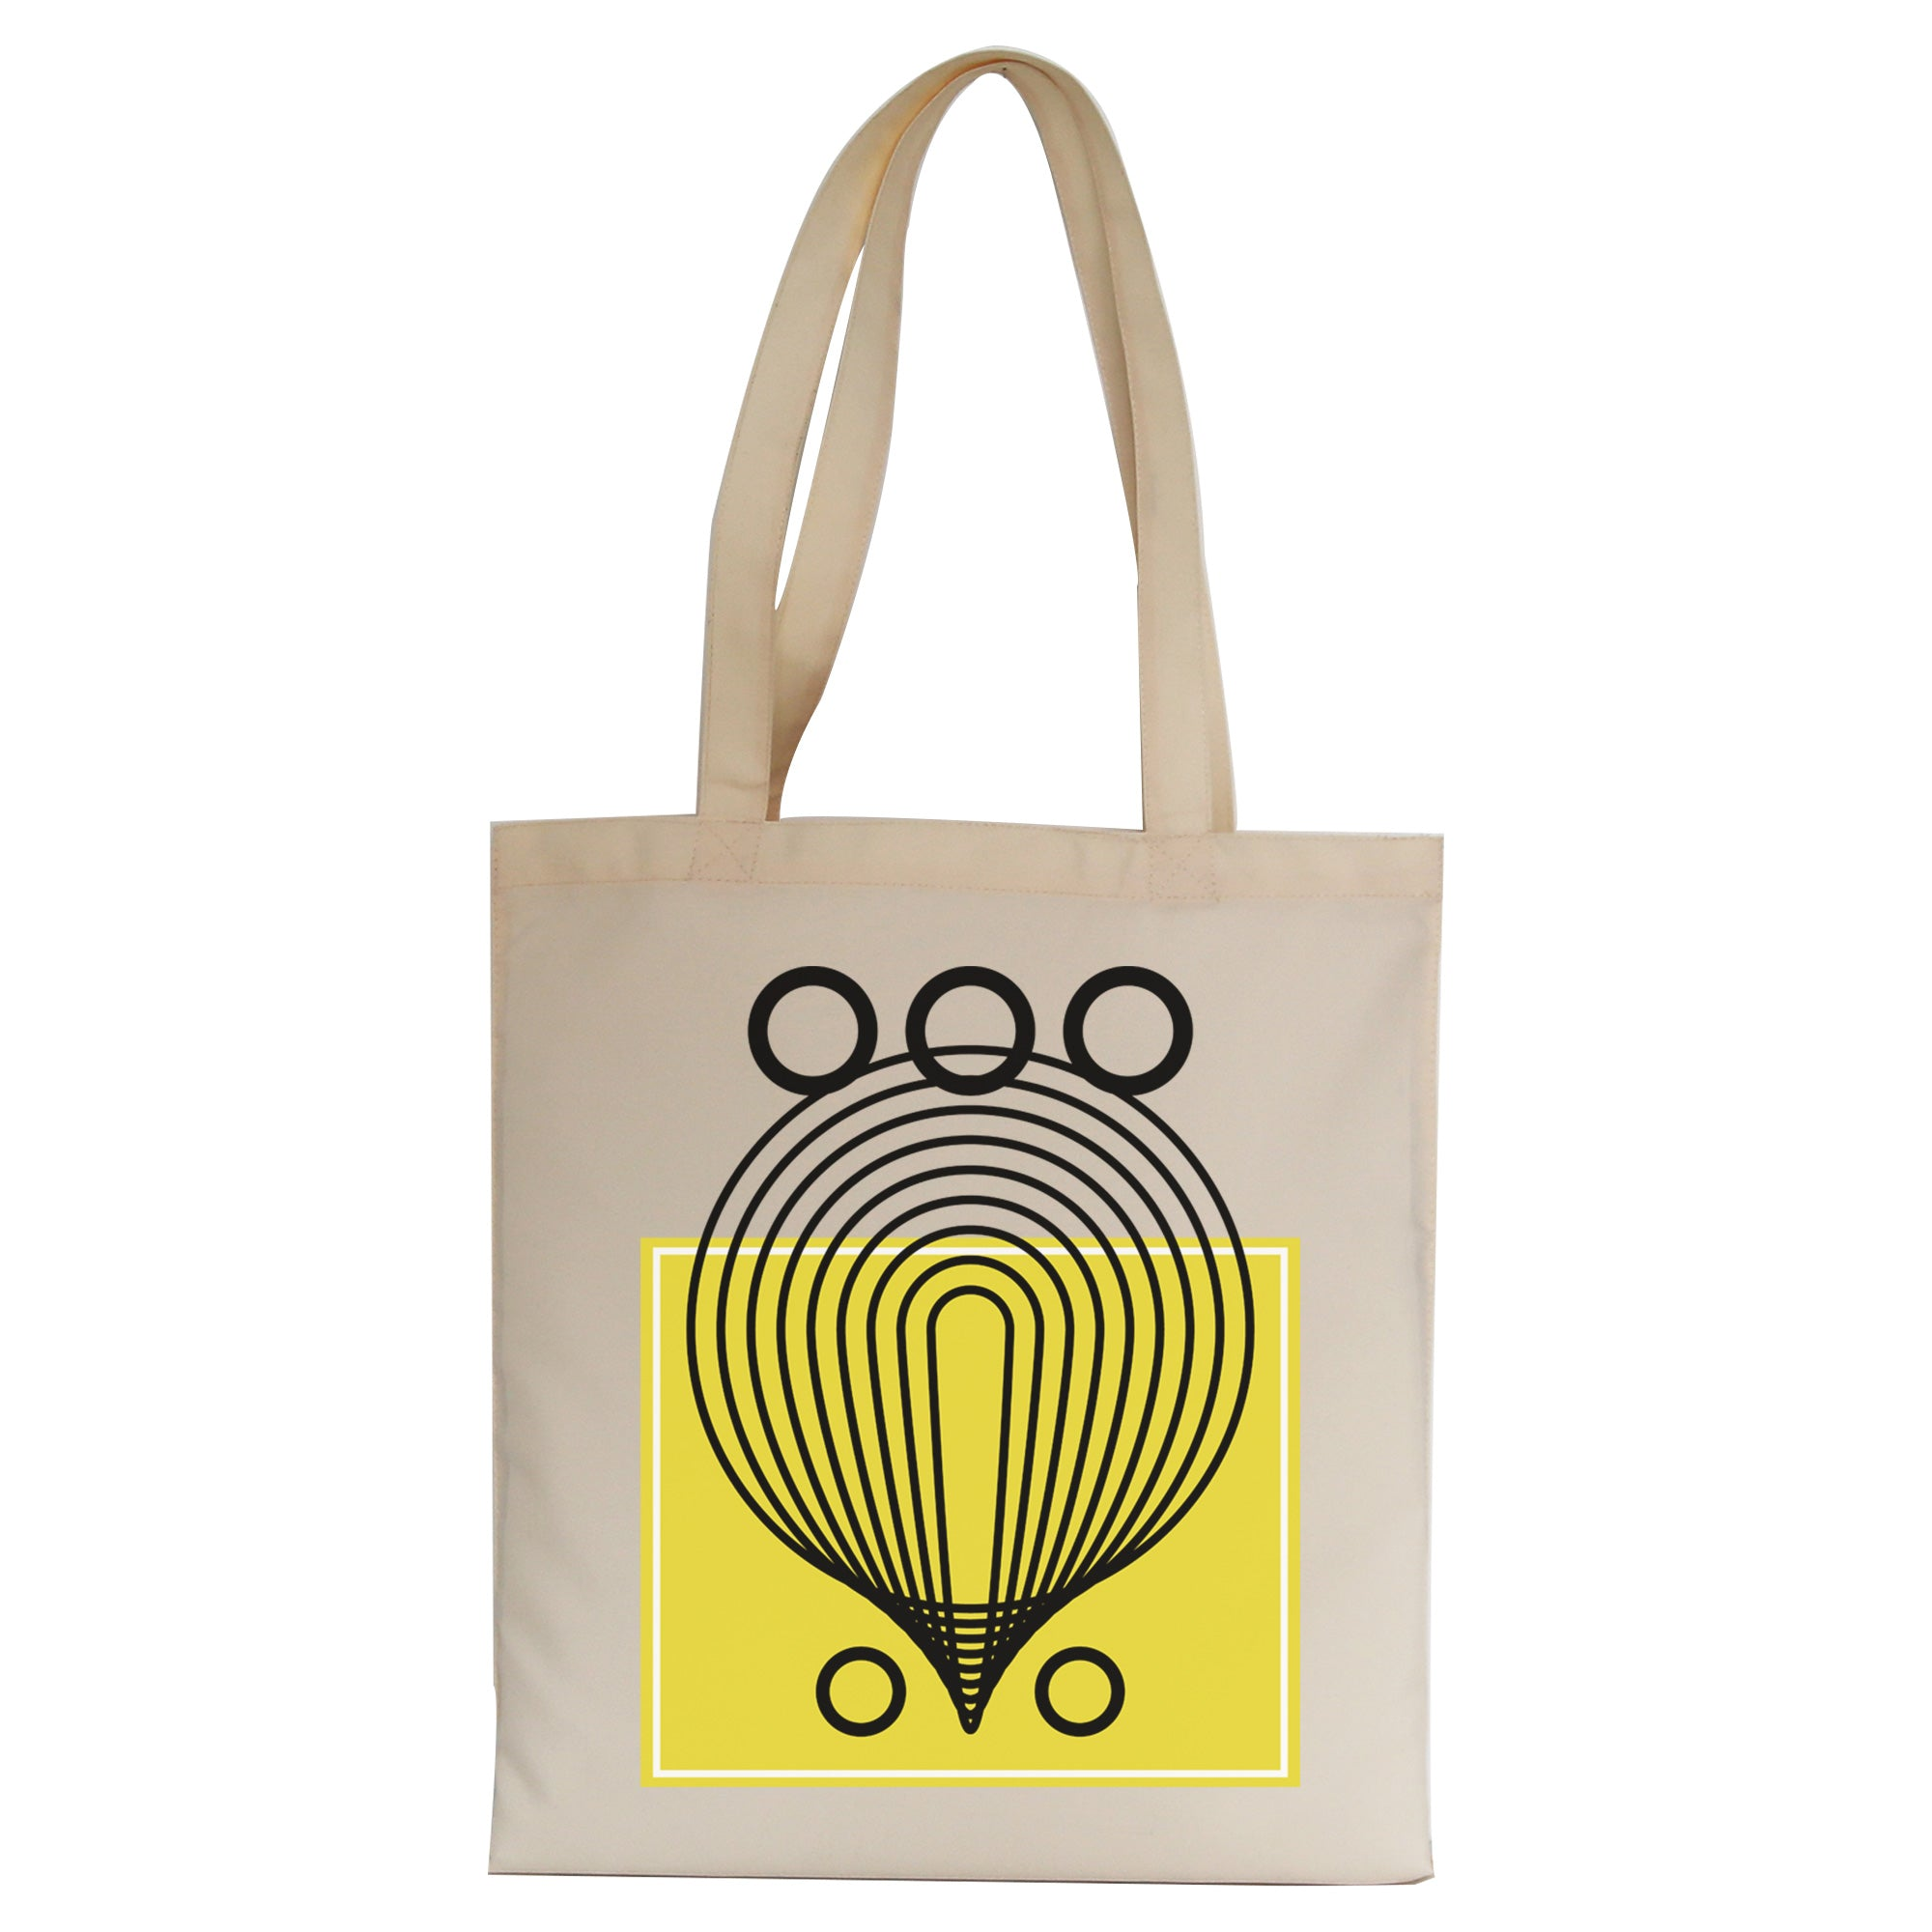 Geometric abstract shapes tote bag